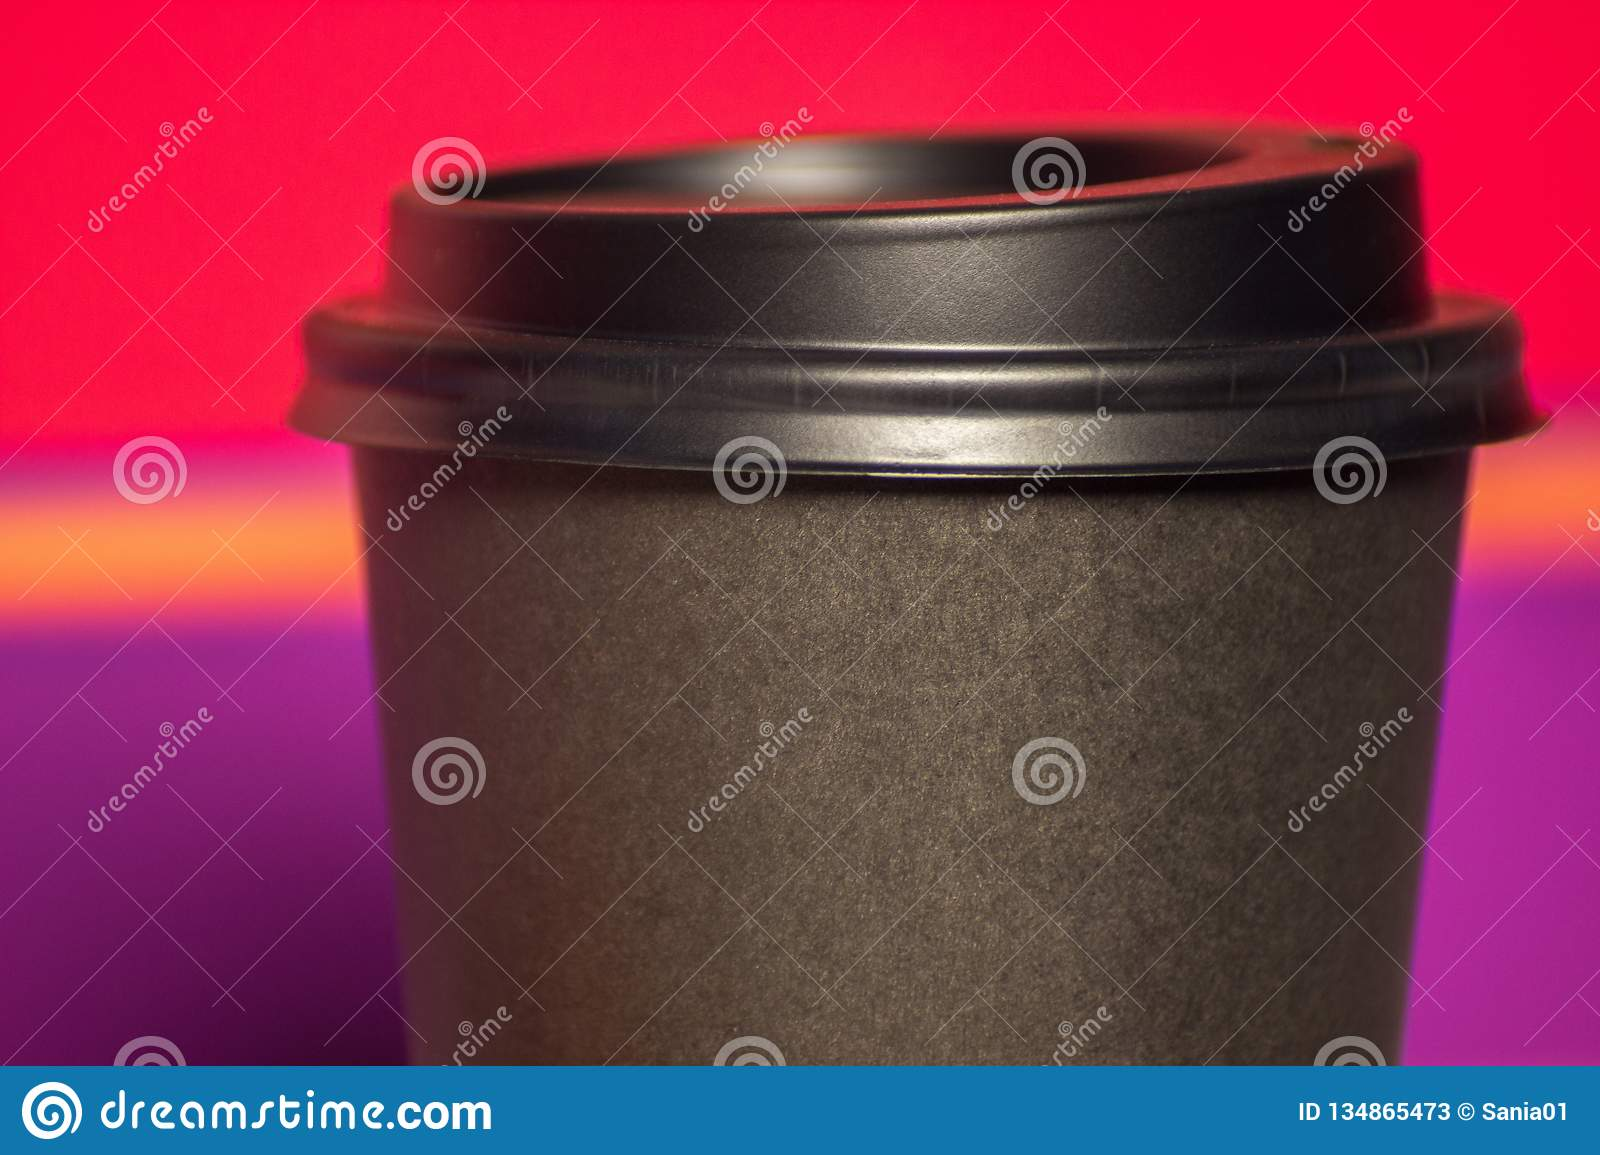 Black paper Cup with plastic lid. coffee or takeaway on a violet and pink background. brutal glass